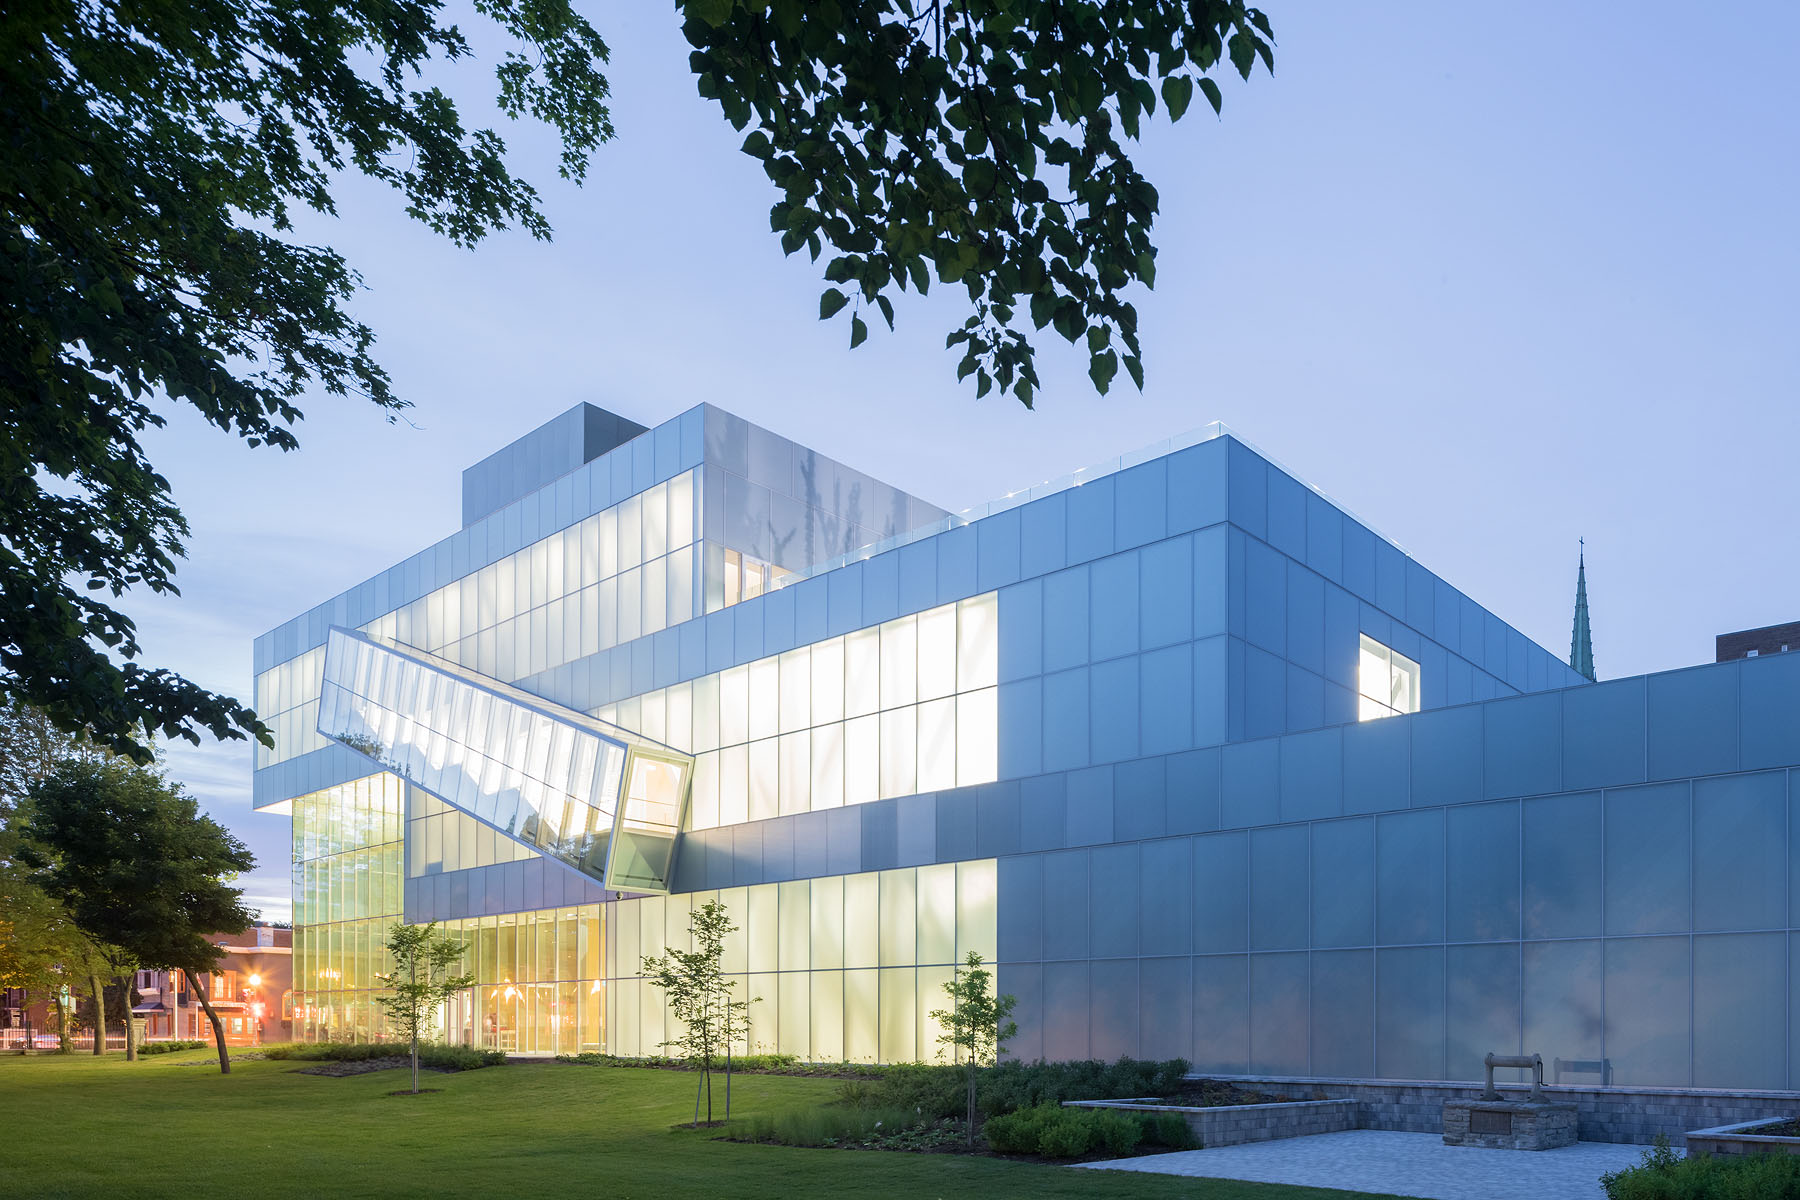 The 14,900sf museum stacks three gallery volumes in a cascading cantilever over the Grand Hall. -